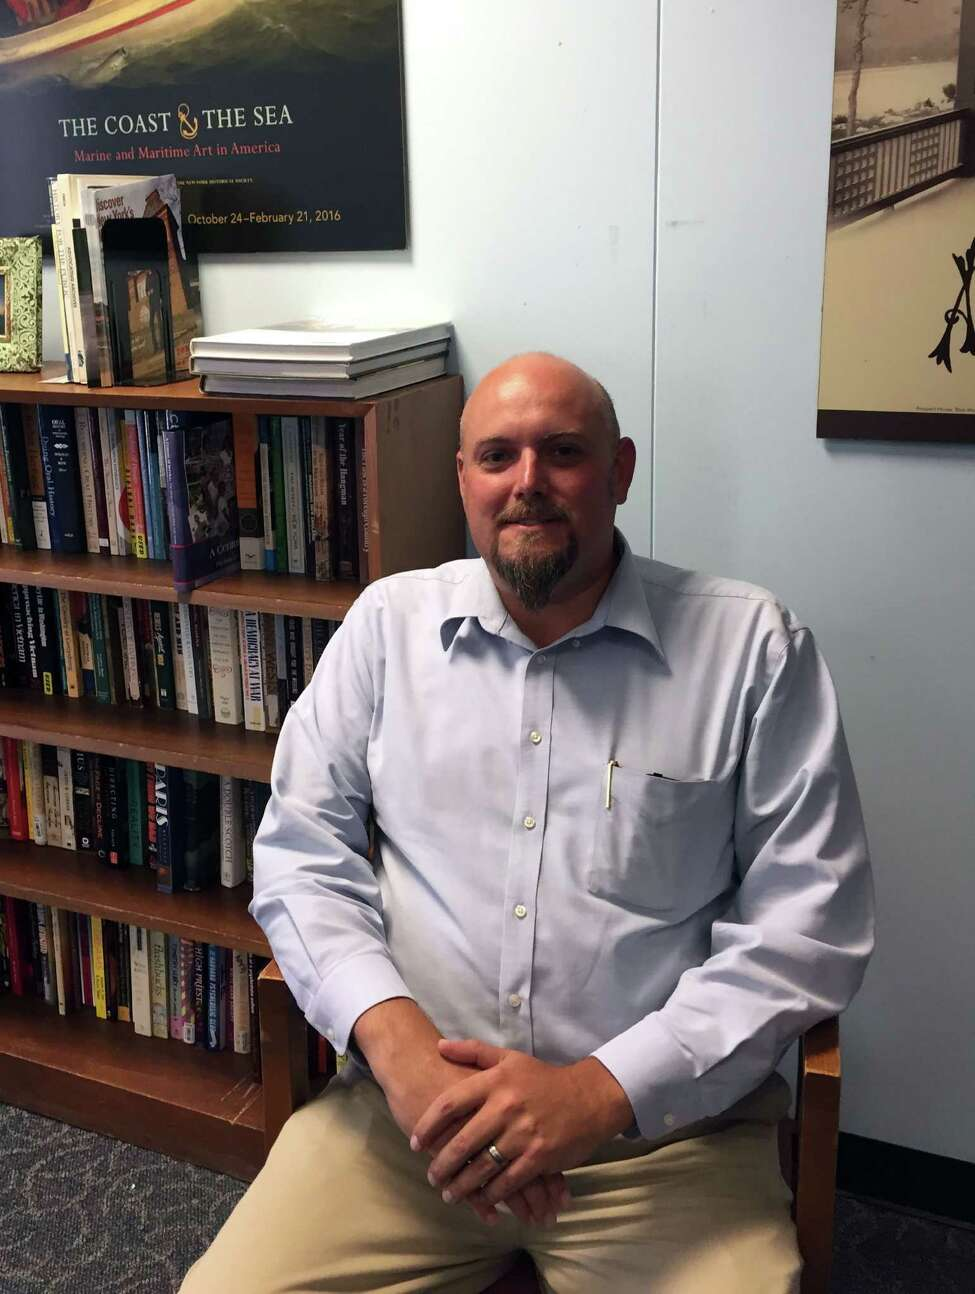 Newly appointed State Historian Devin Lander at his office at the State Museum on Wednesday, July 6, 2016, in Albany, N.Y. (Paul Grondahl/Times Union)